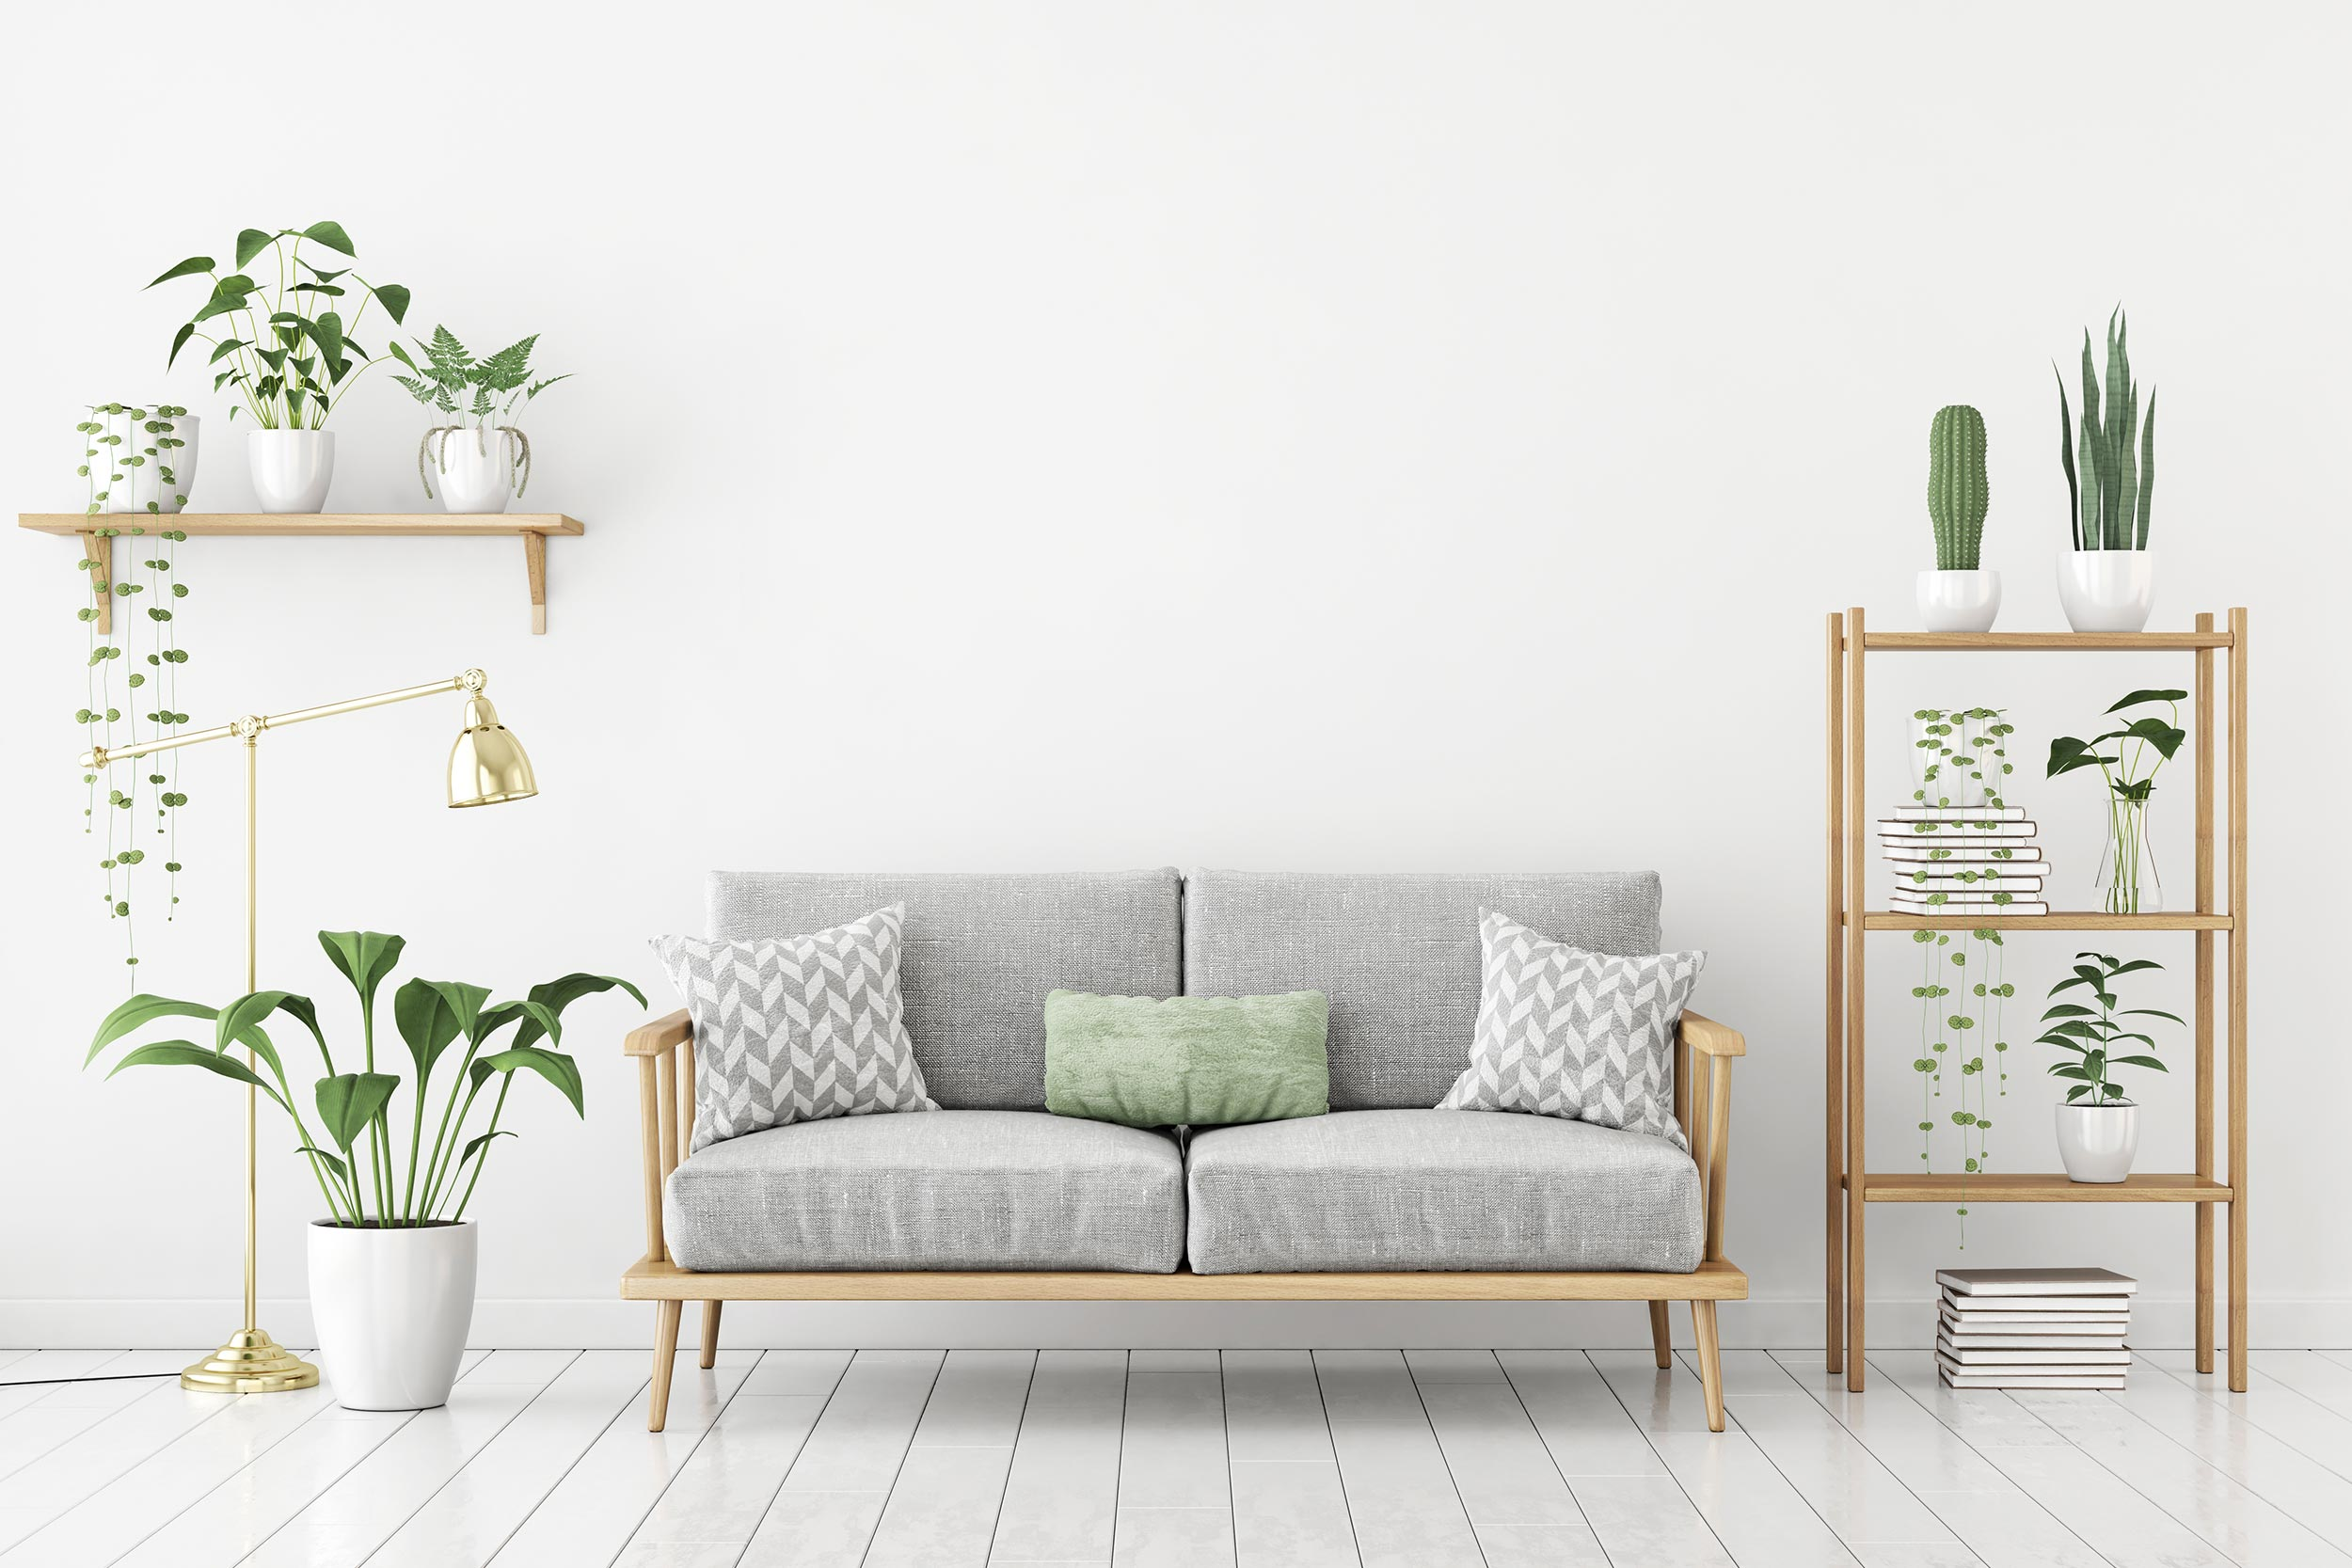 Living room: a couch and some plants on shelves